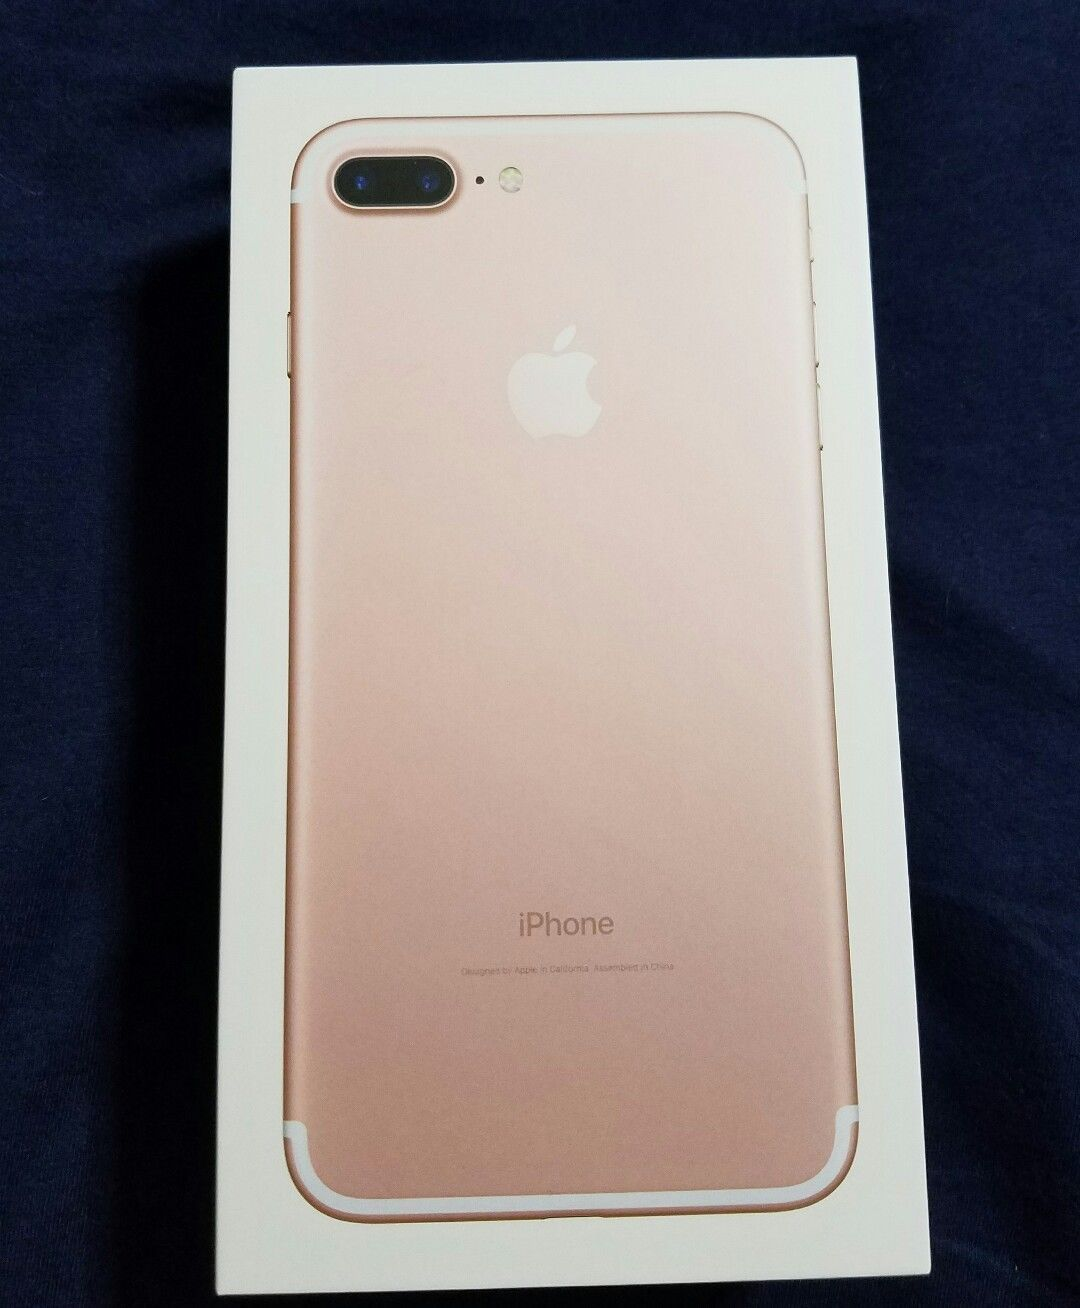 apple iphone 7 plus 128gb rose gold gsm unlocked w o contract ebay iphone pinterest. Black Bedroom Furniture Sets. Home Design Ideas